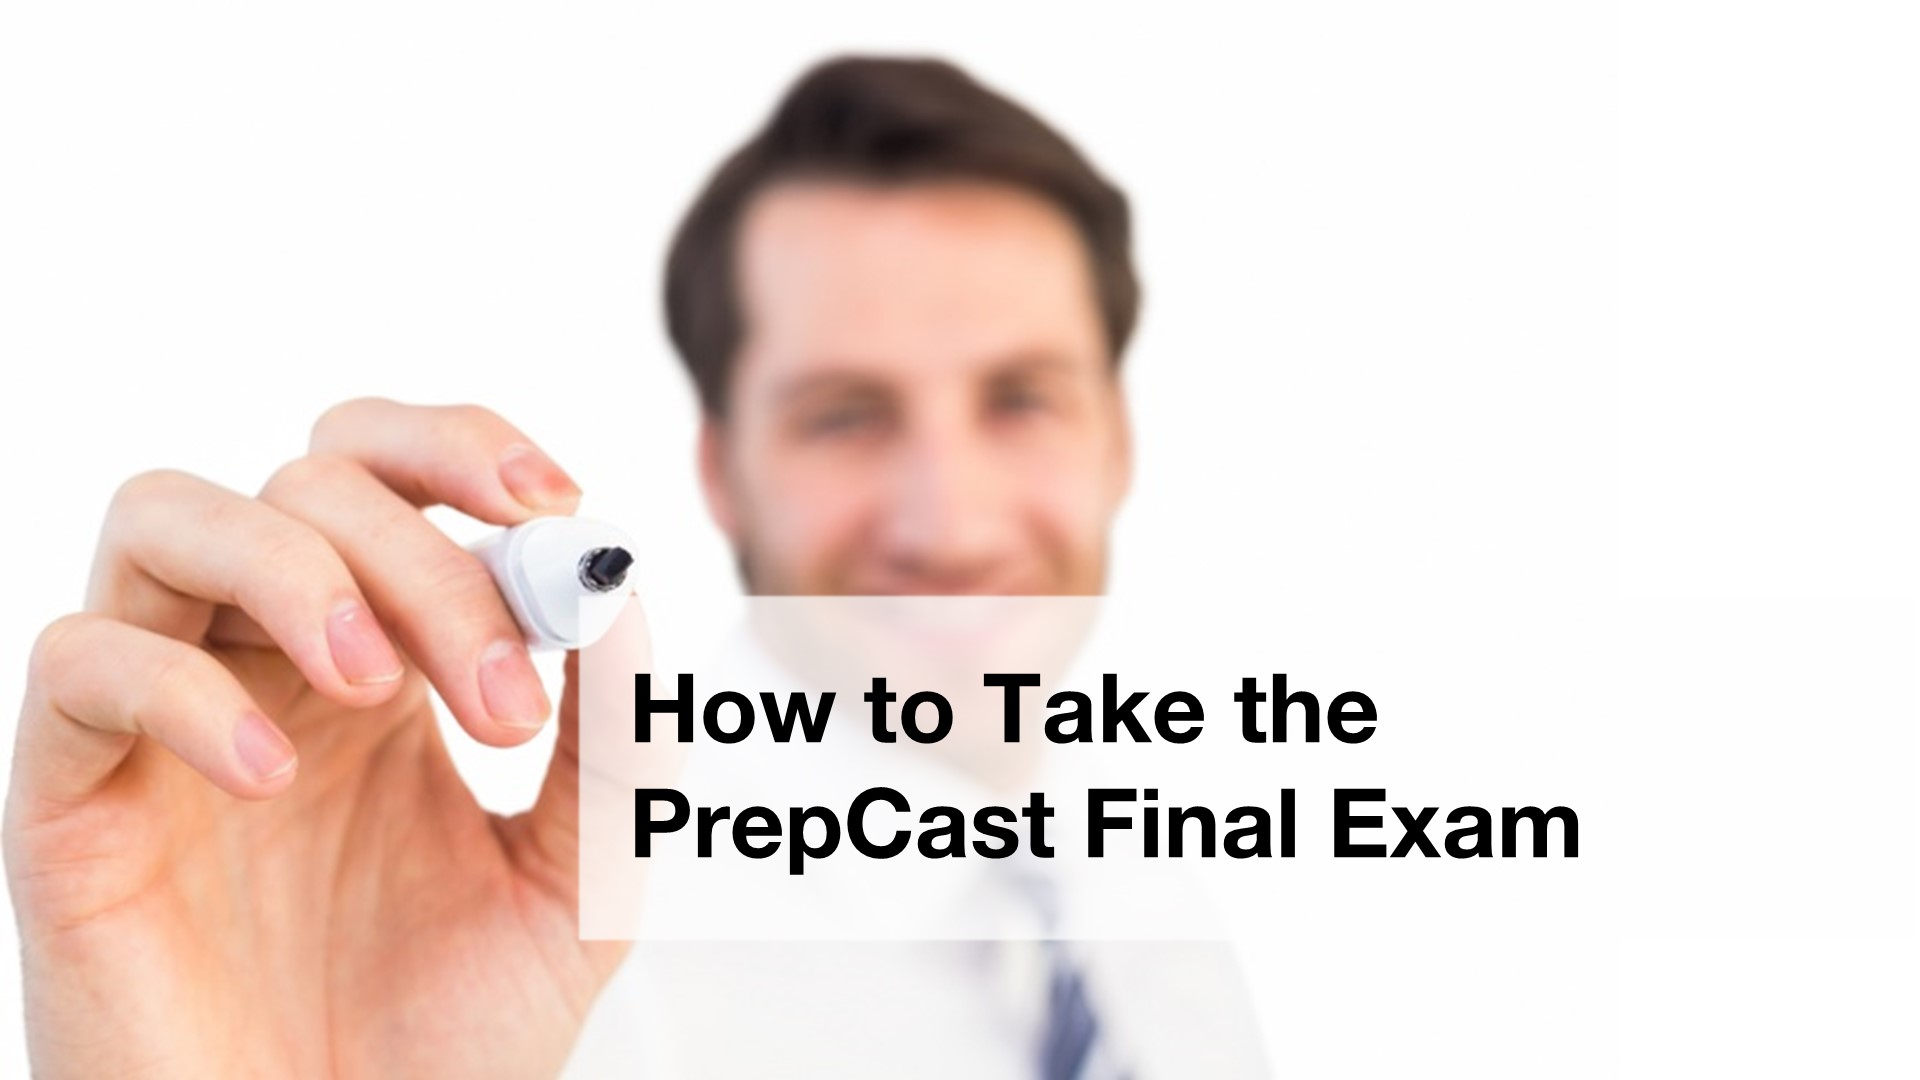 PrepCast - How to take the final exam